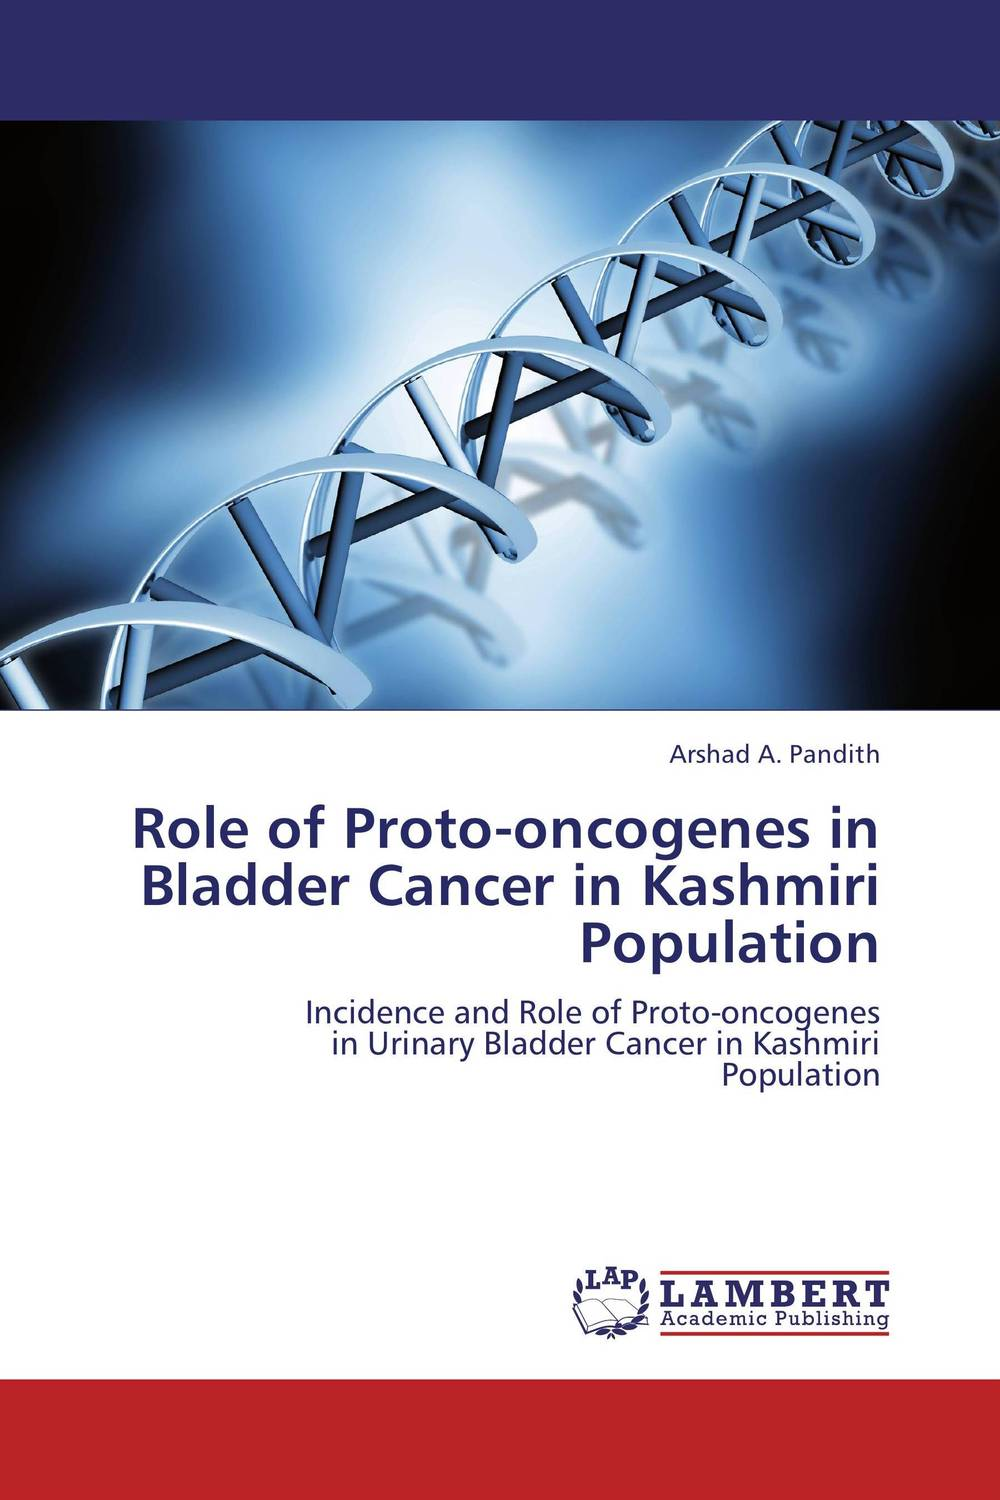 Role of Proto-oncogenes in Bladder Cancer in Kashmiri Population analysis of tp53 and promoter hypermethylation of mgmt in lung cancer